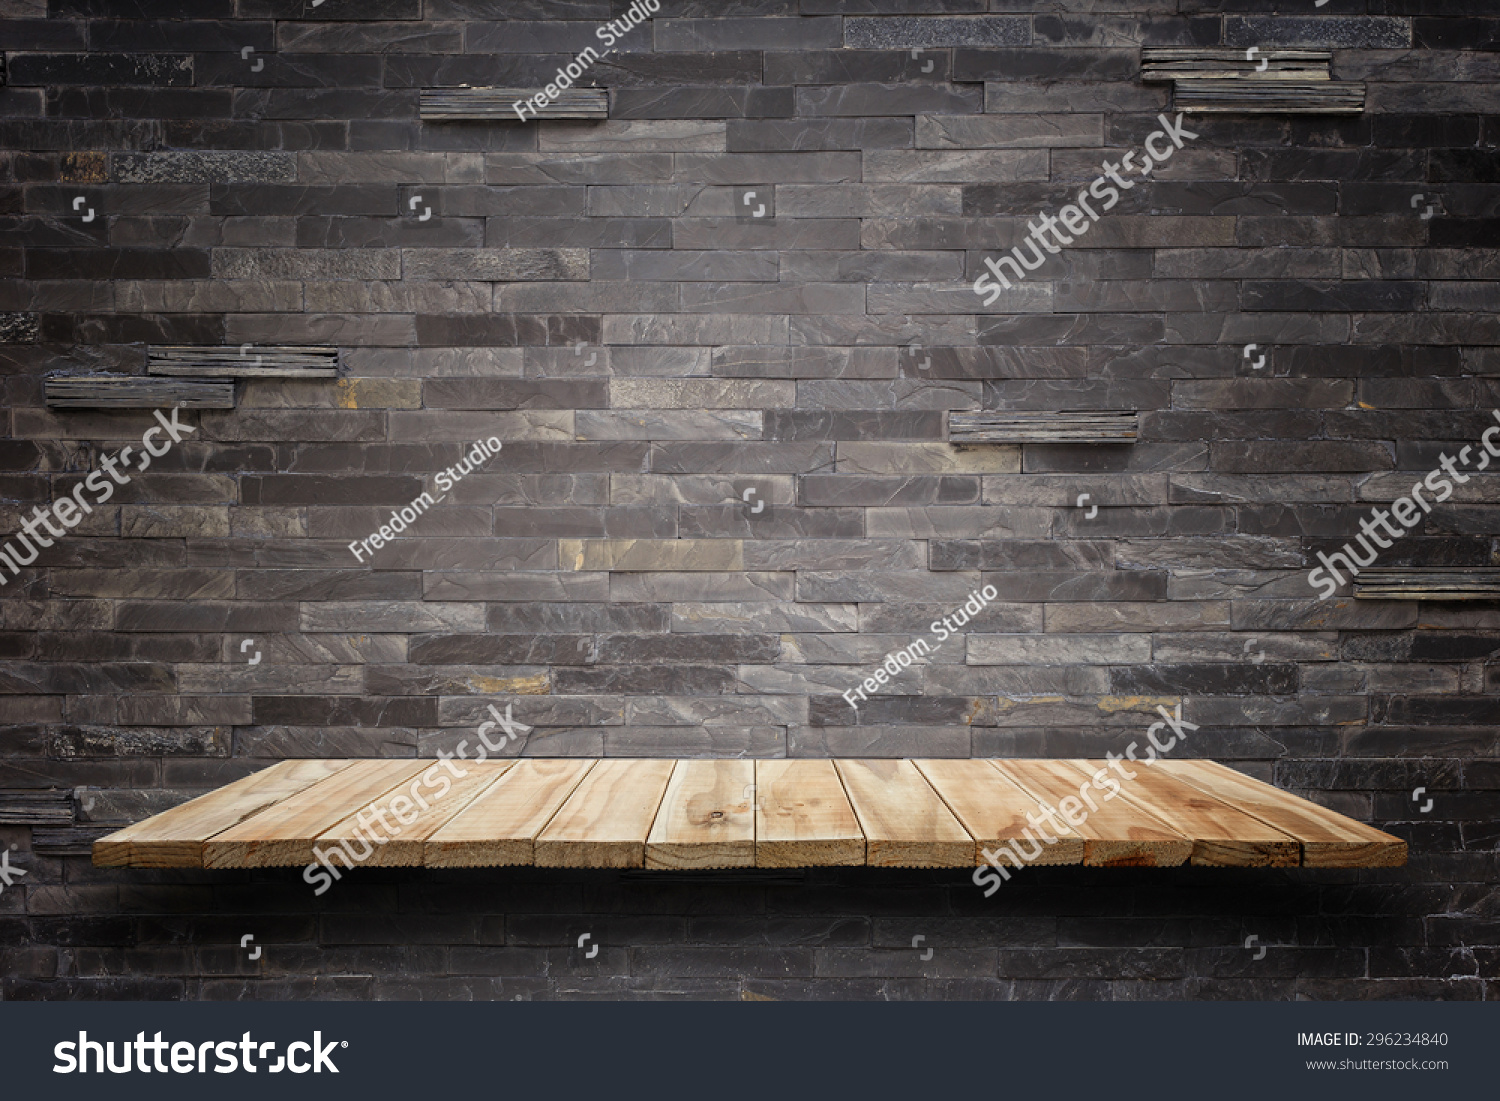 Empty top wooden shelves and stone wall background For product display